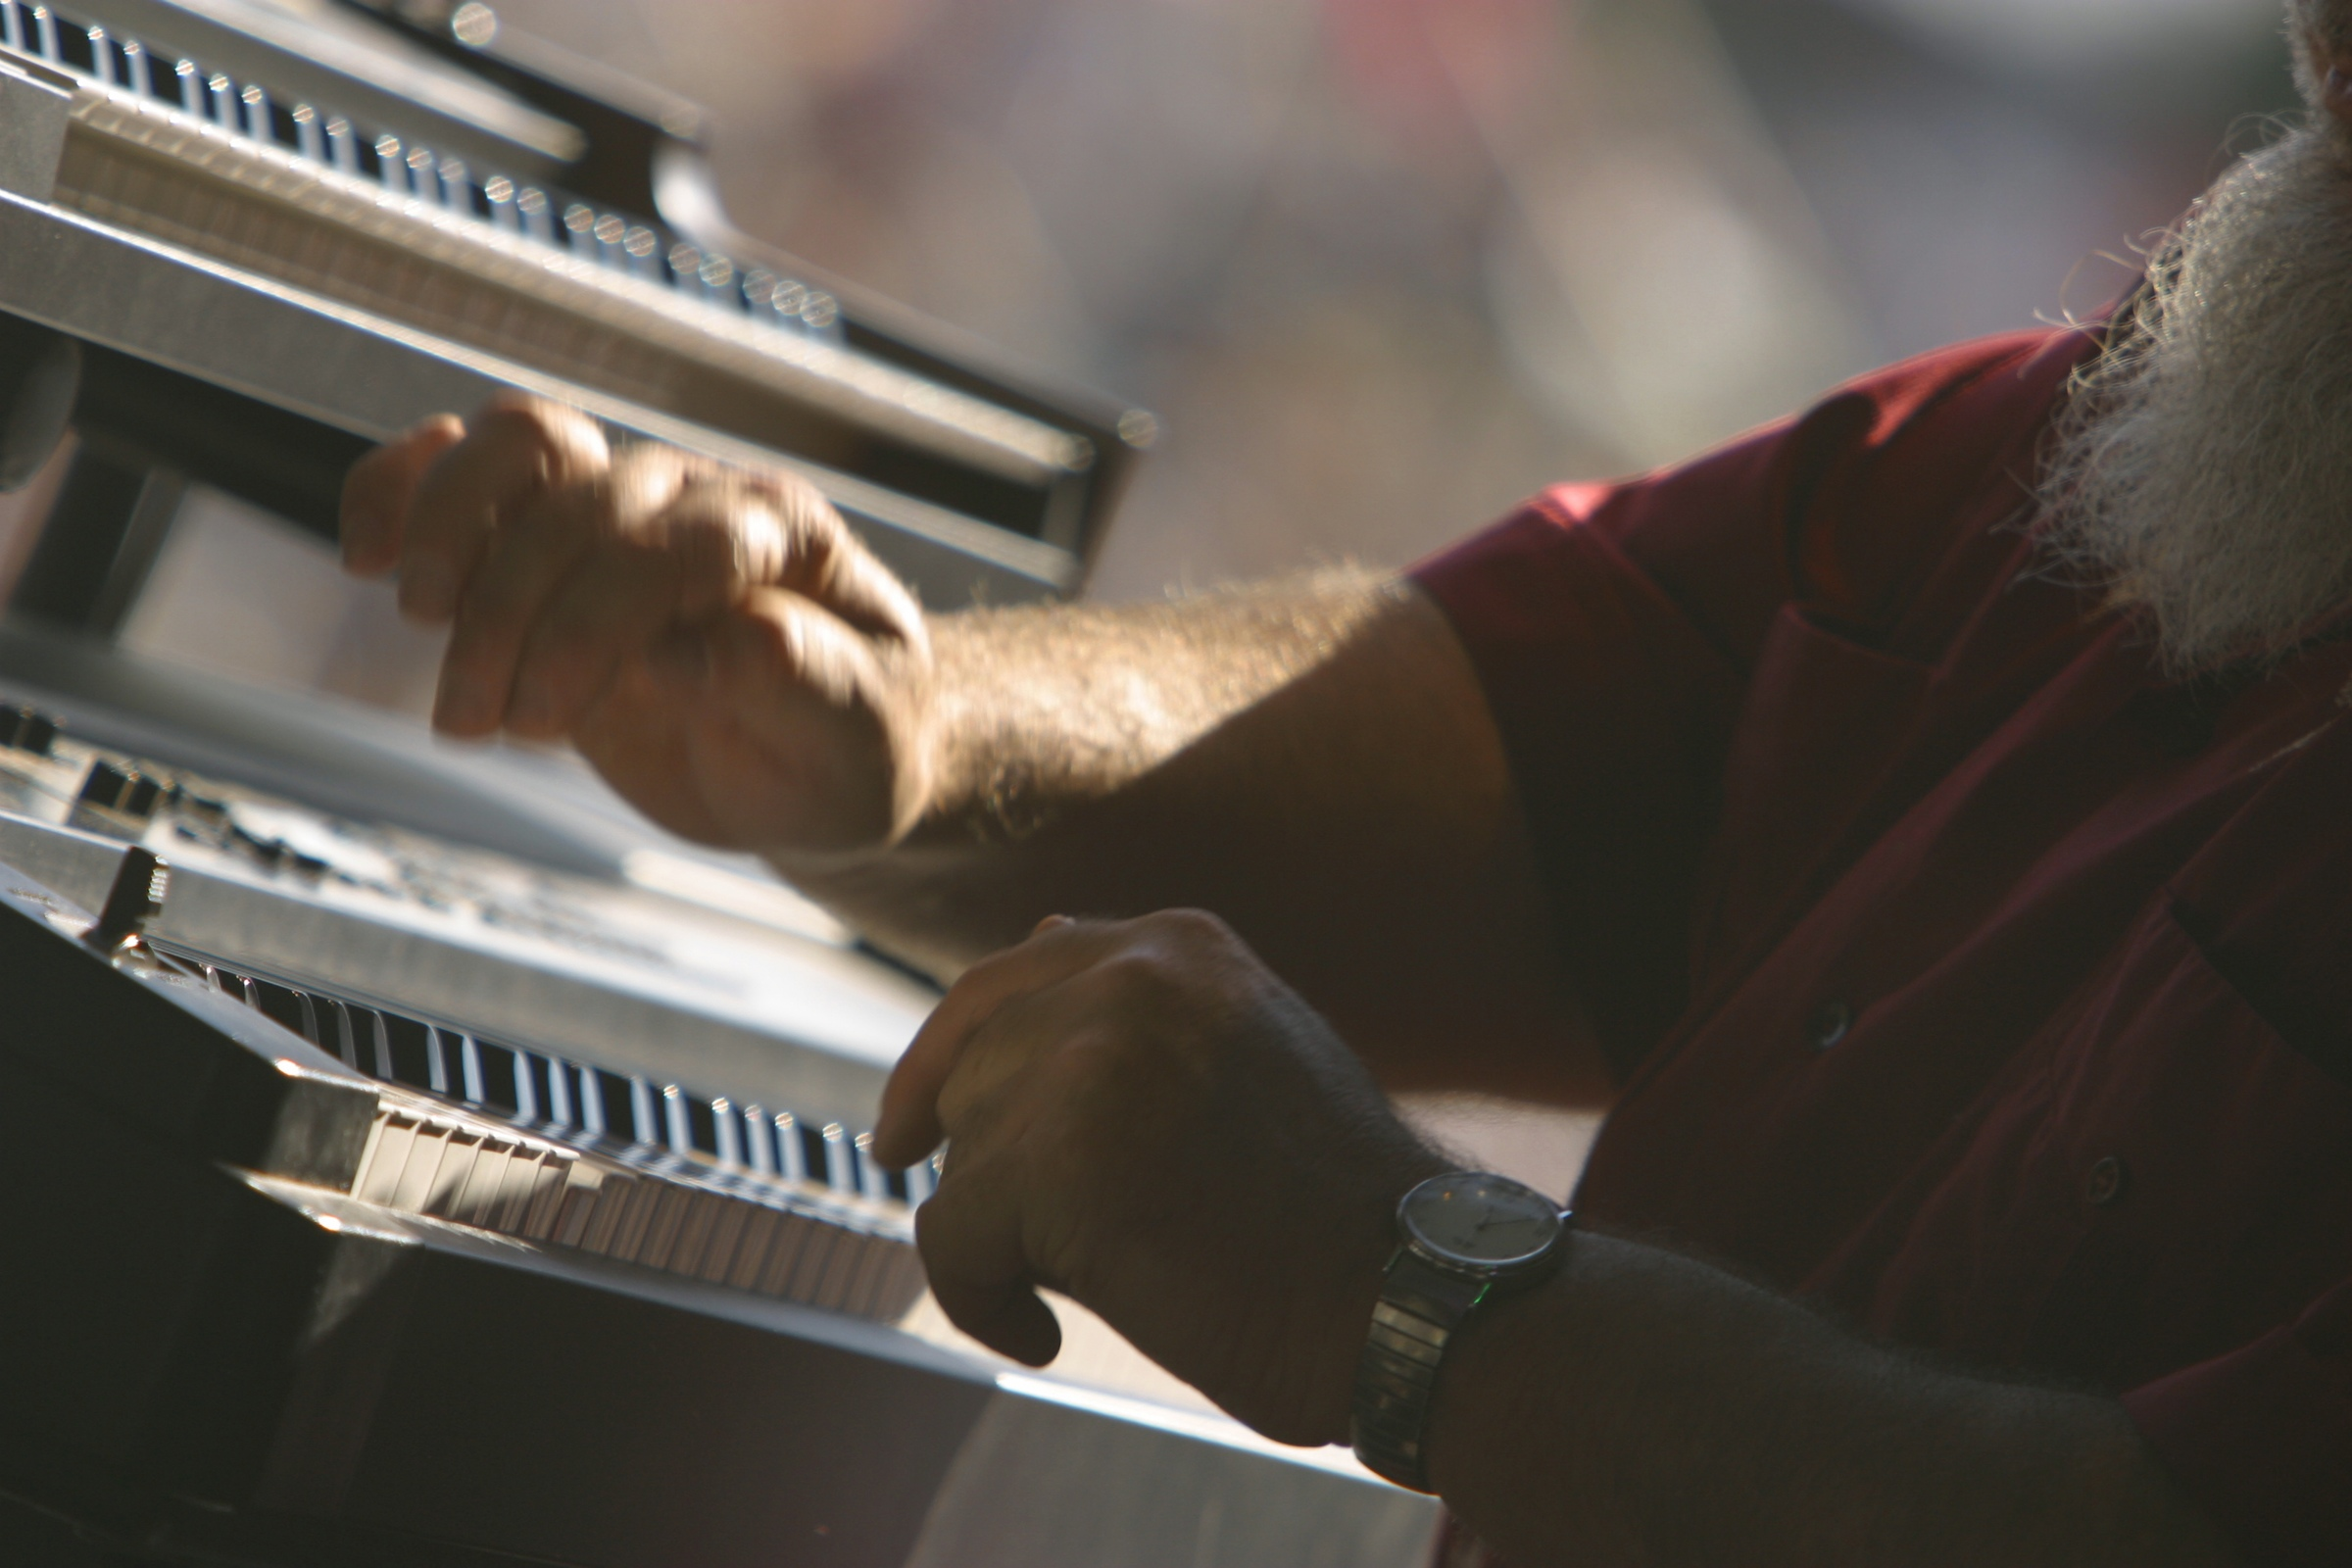 Learn to play music Denver locations Learn to play music Lakewood locations.